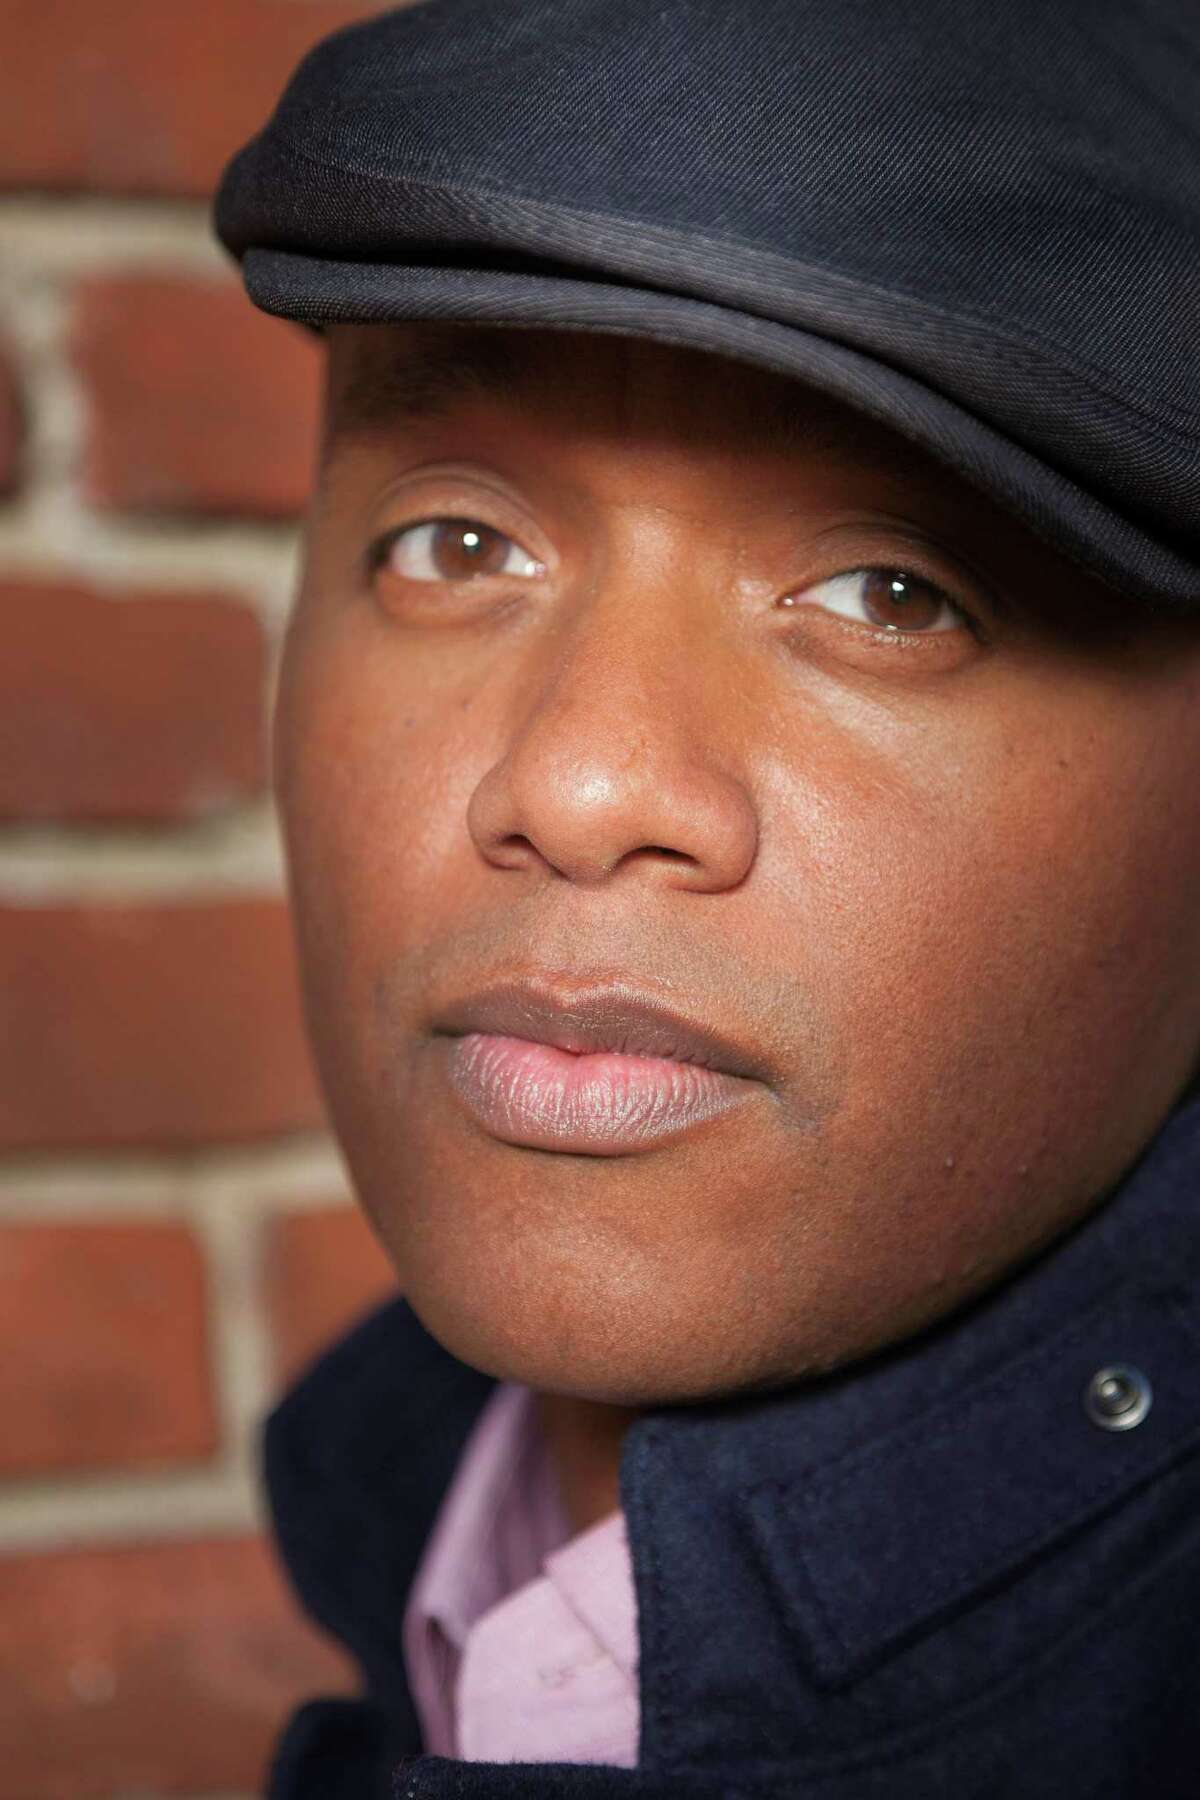 Singer and songwriter Javier Colon is scheduled to perform Dec. 5 at Infinity Music Hall in Hartford.